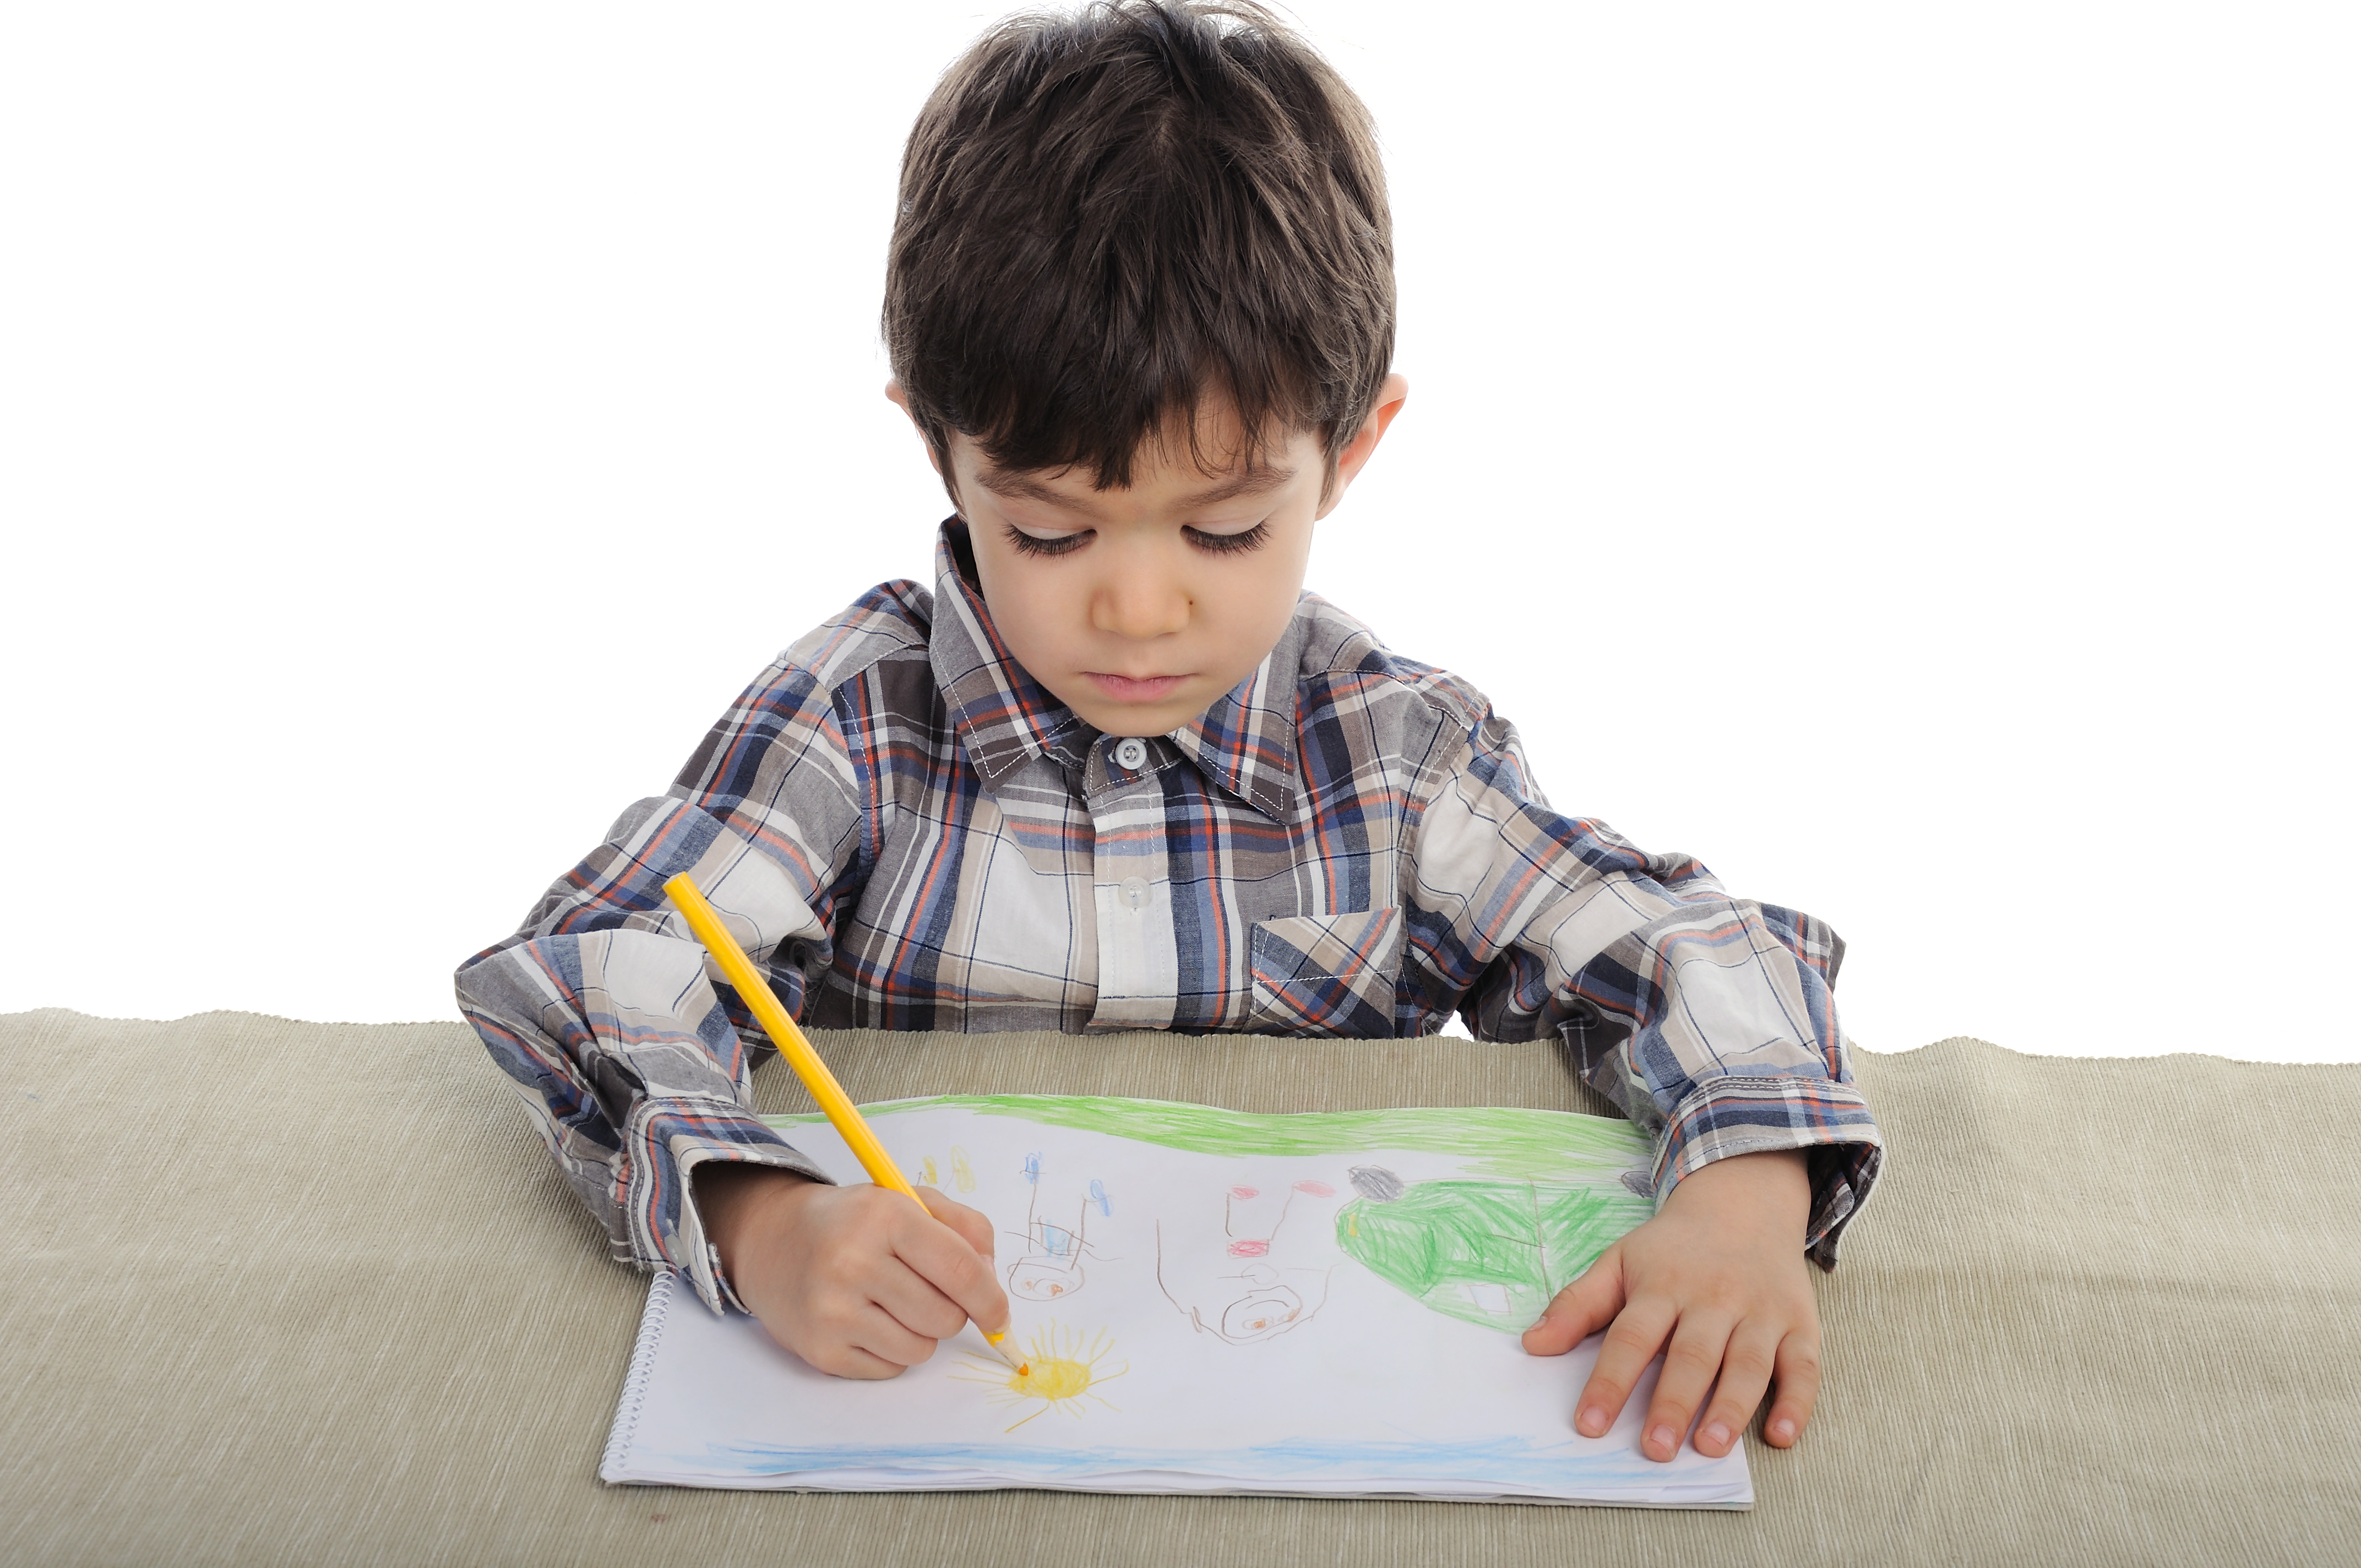 Art Therapy May Help Kids With Behavior Problems